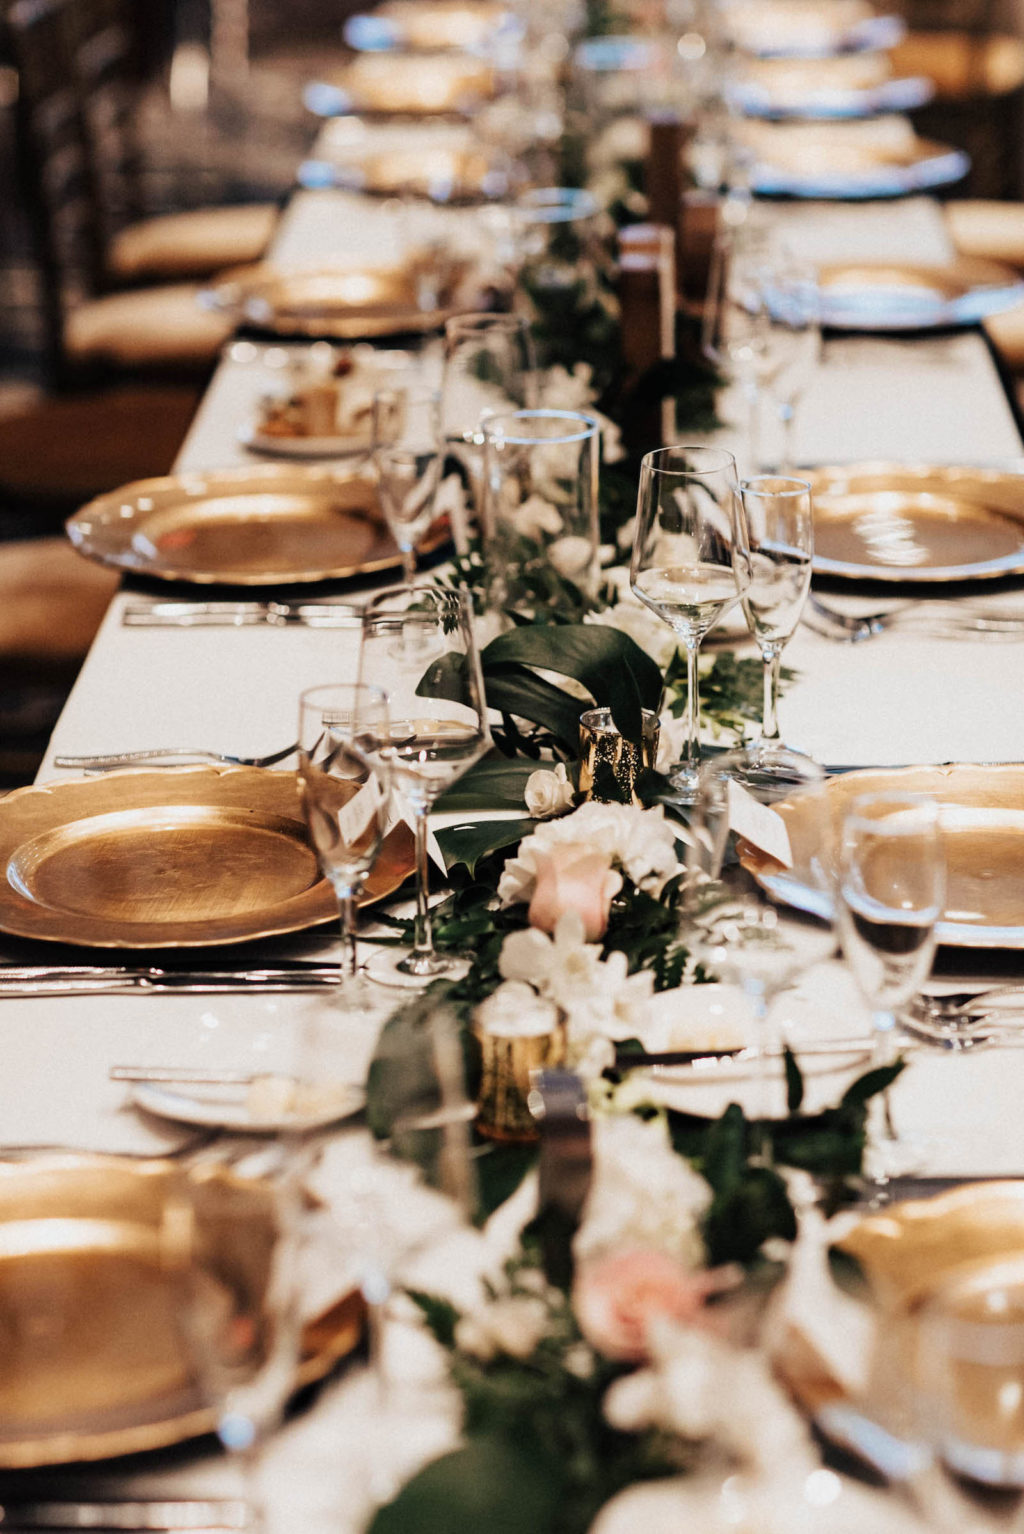 Gold Chargers with Floral and Greenery Centerpieces for Wedding Feasting Tablescape | Tampa Bay Rental Company Kate Ryan Event Rentals